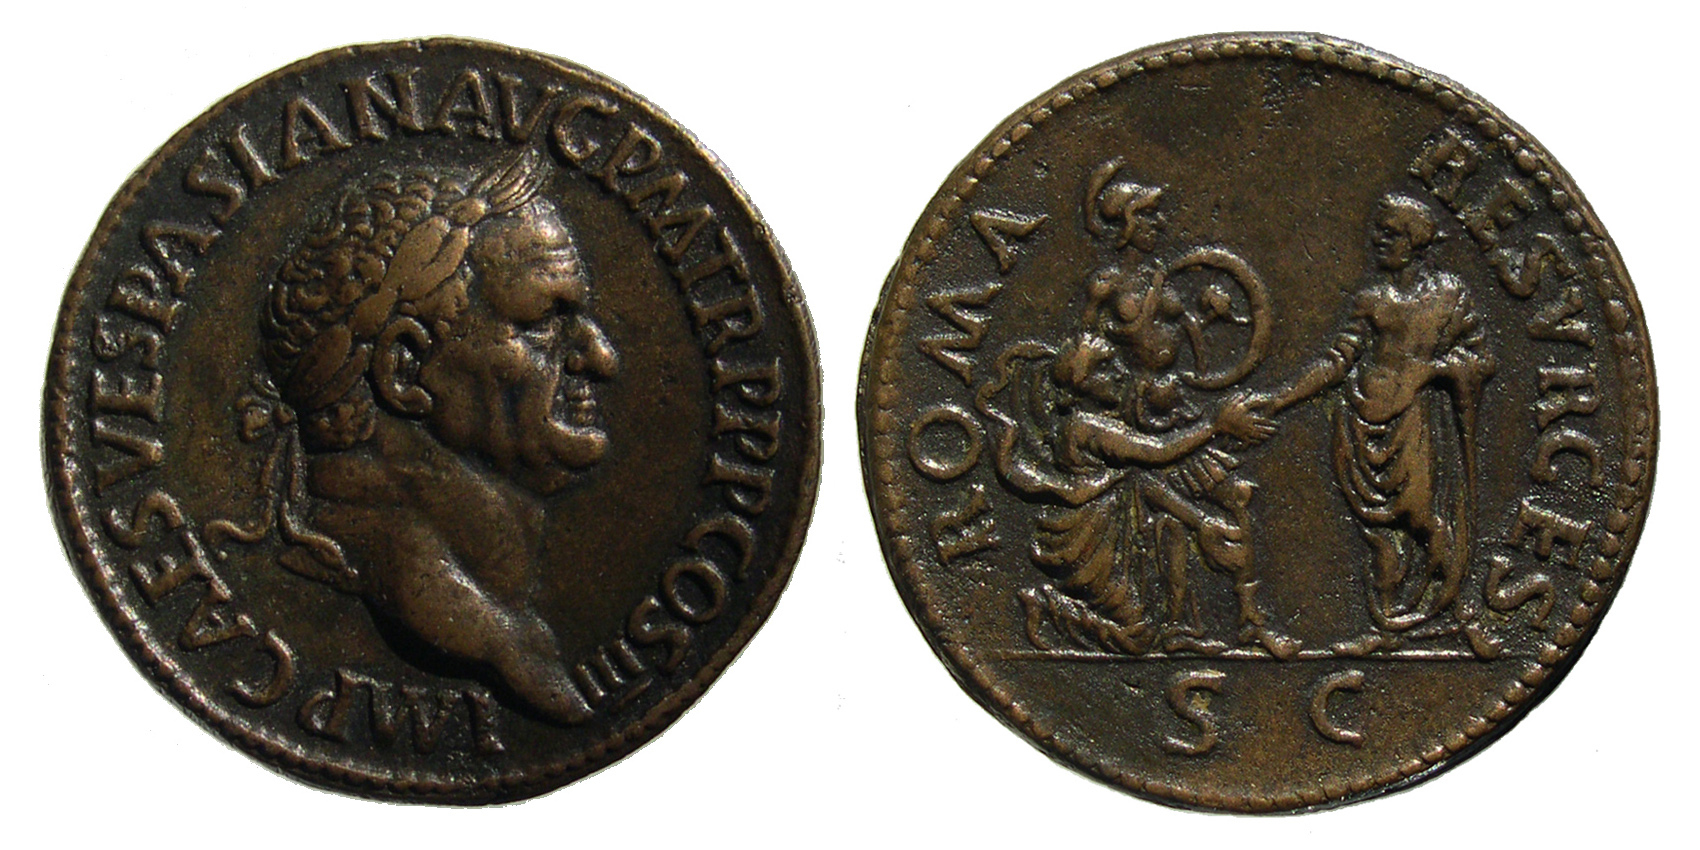 Pauan Counterfeit Sestertius of Vespasian